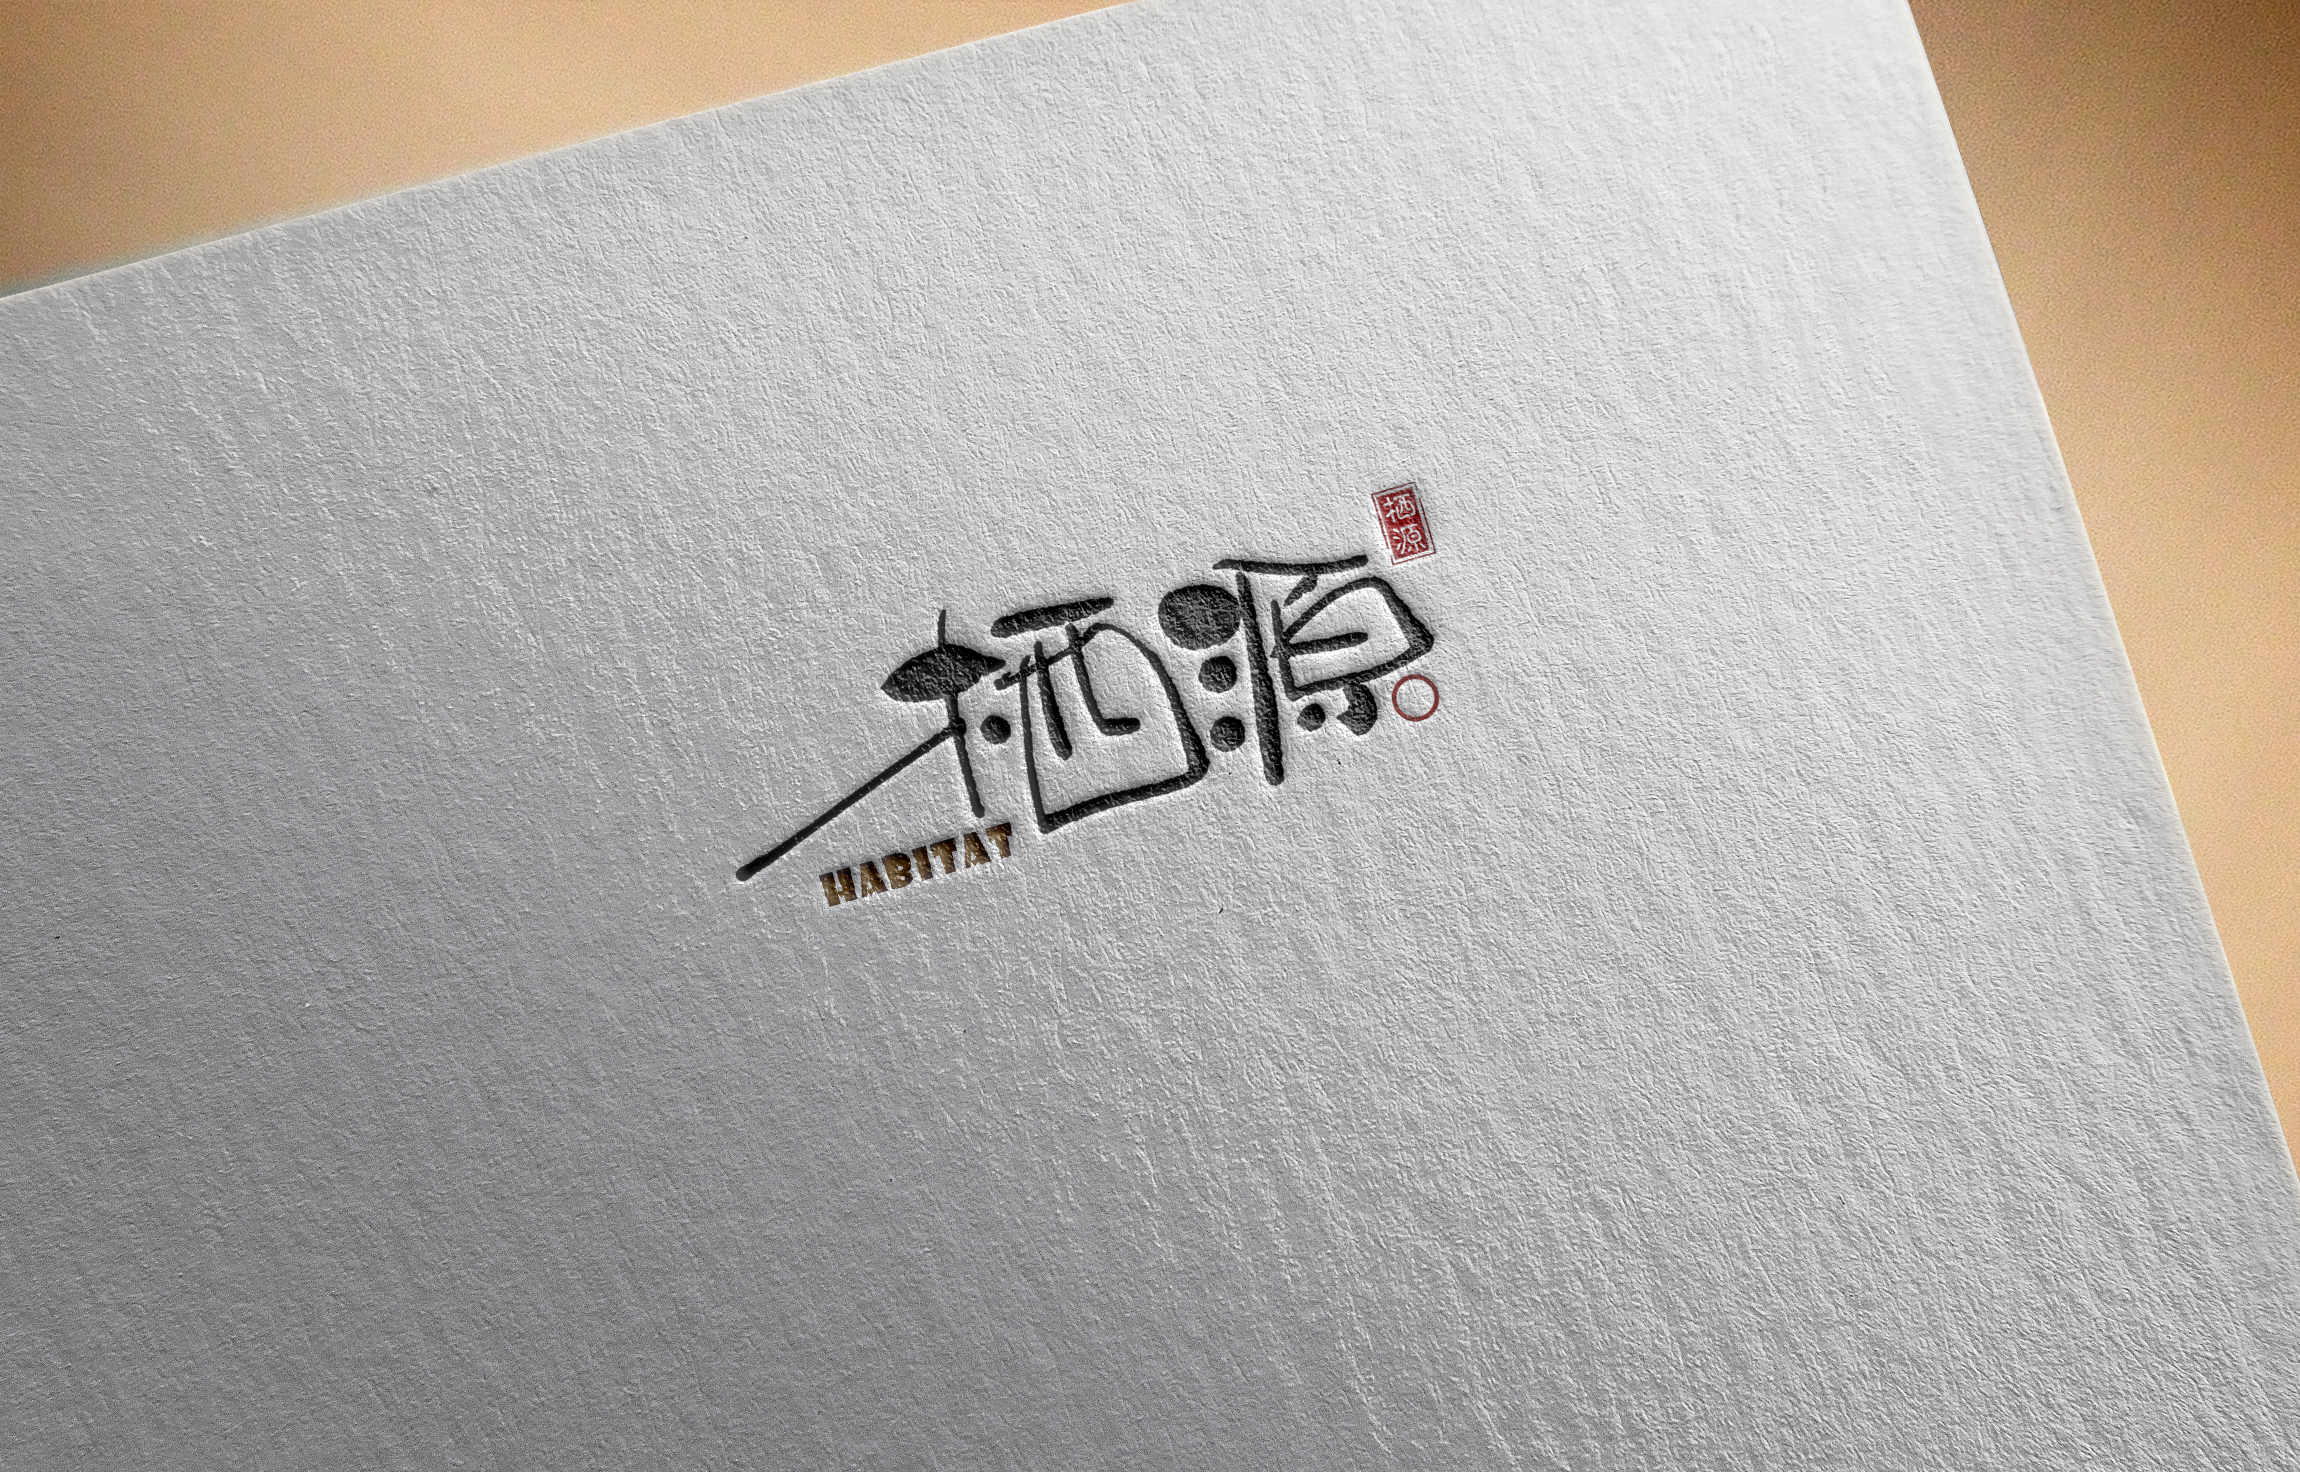 18p The latest collection of Chinese fonts #47